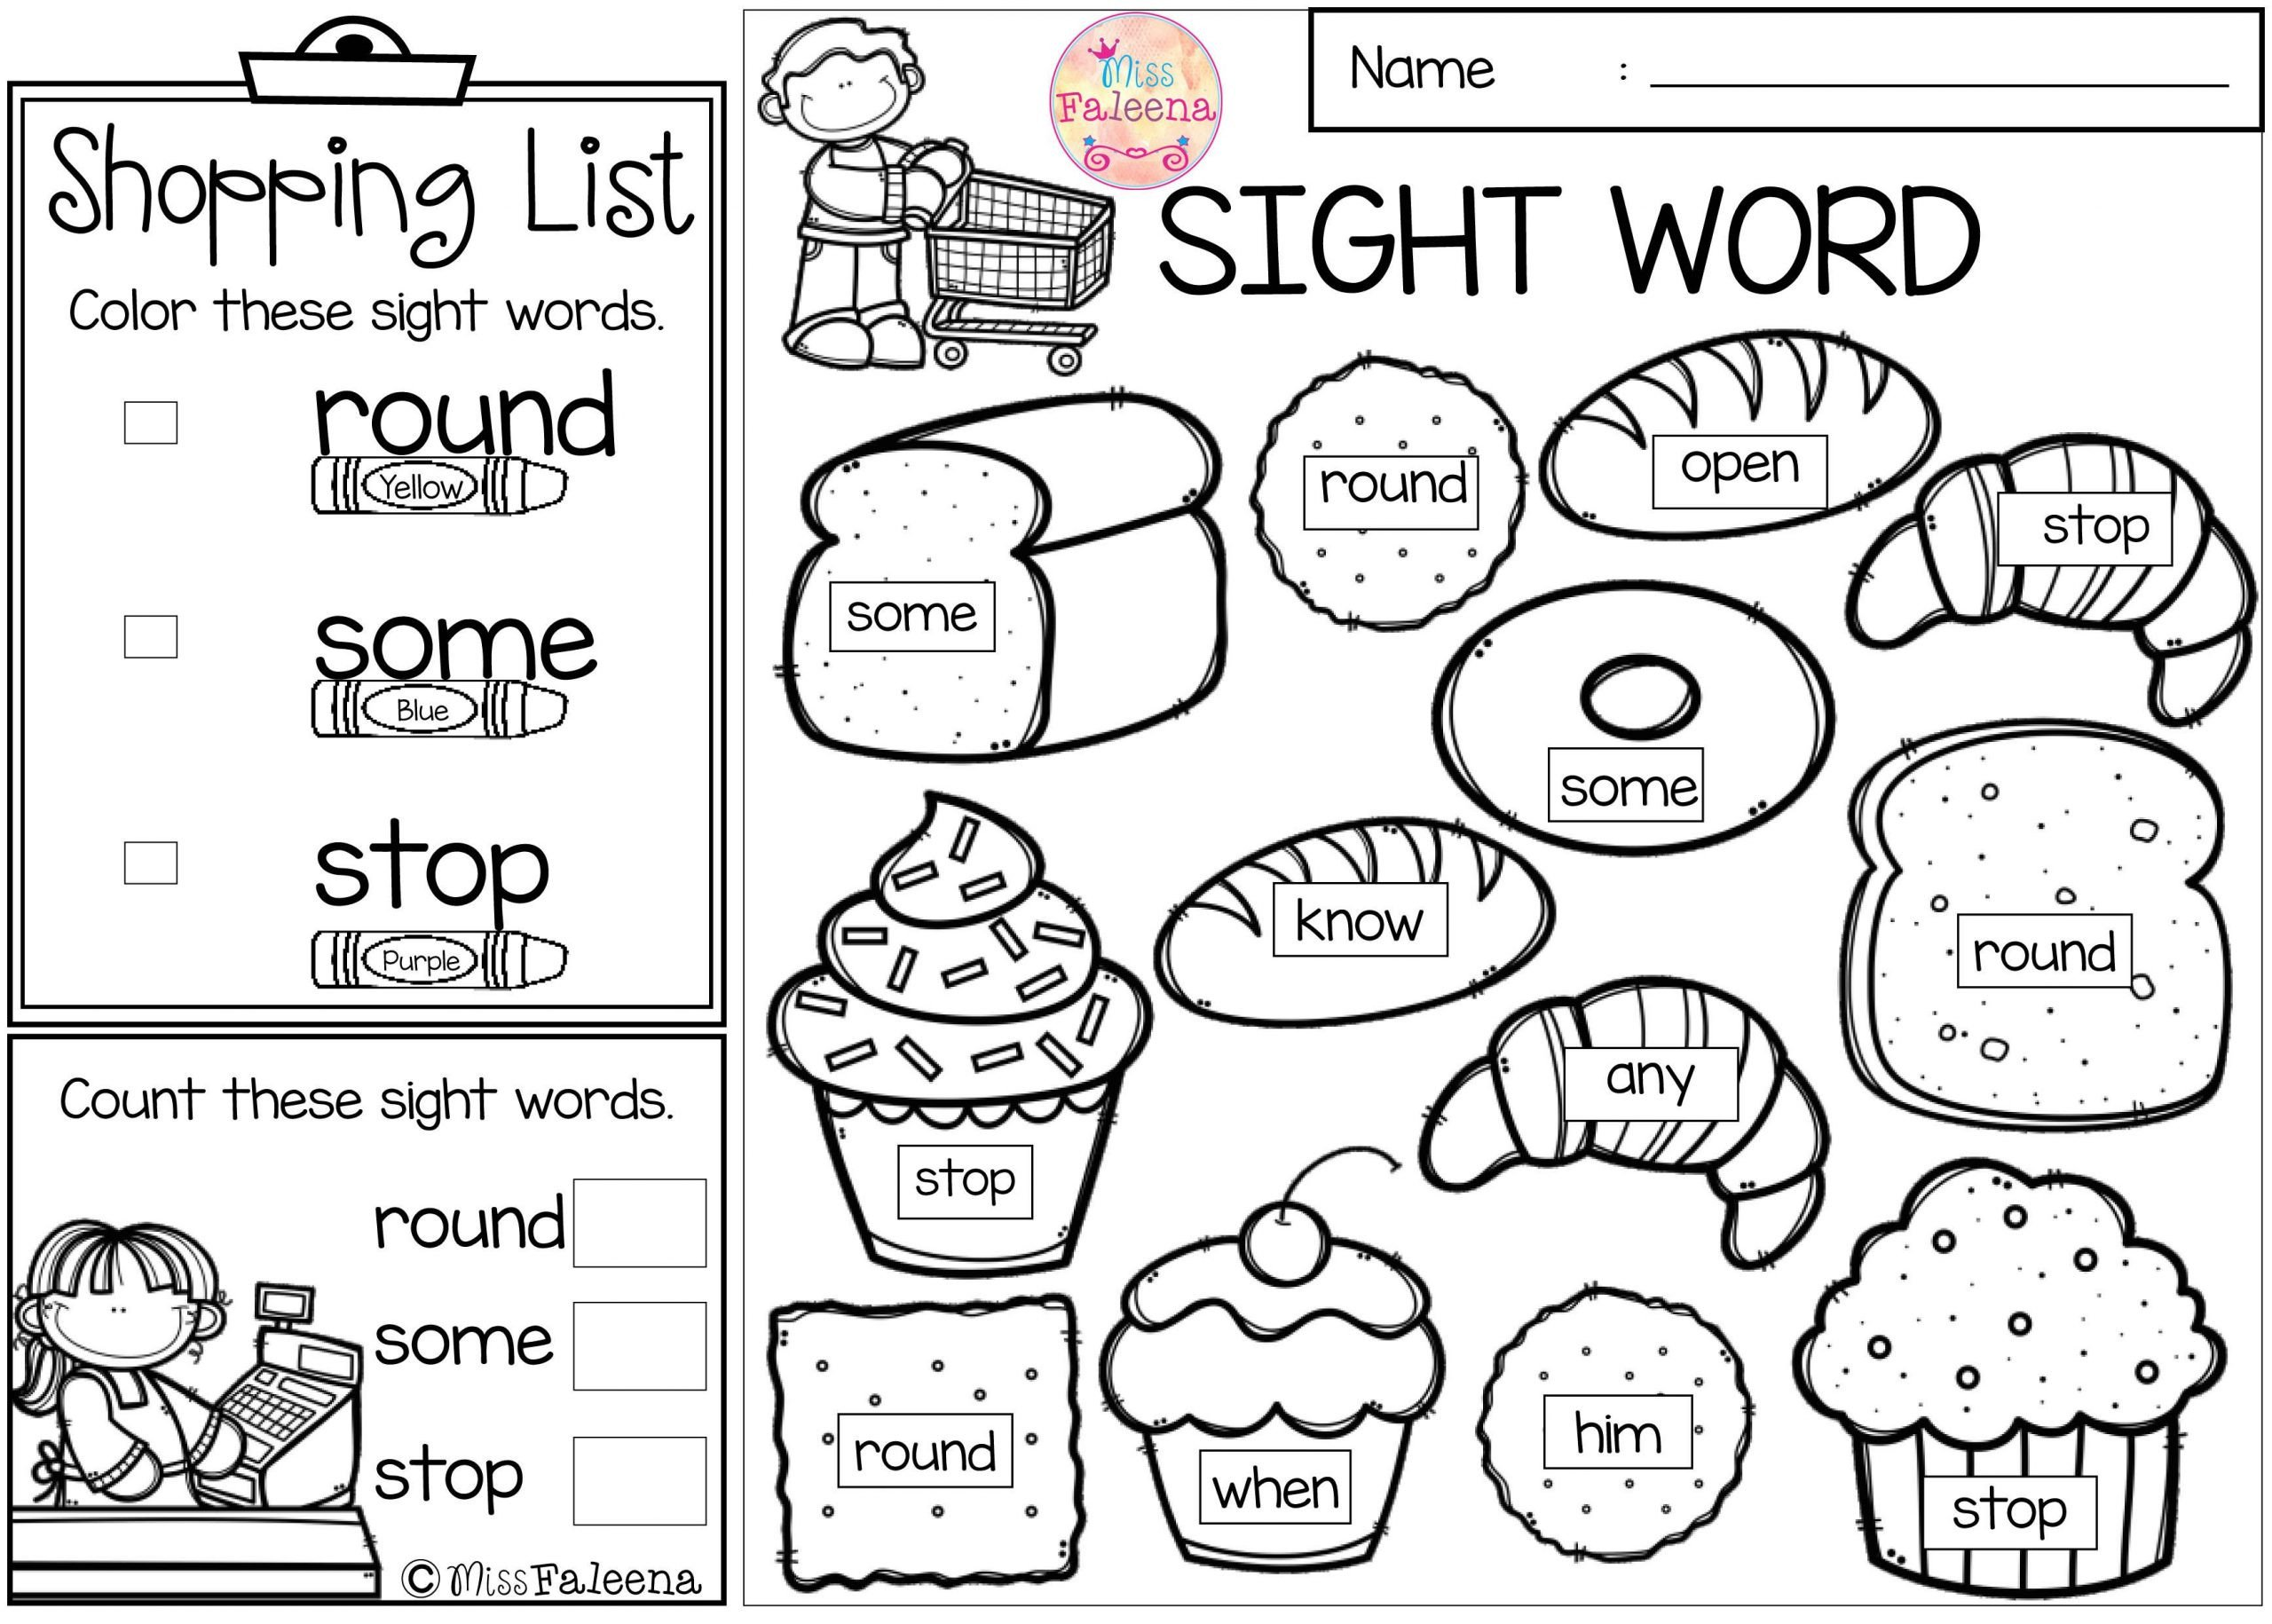 Kindergarten Color Words Worksheets Free Sight Word Worksheets for Kindergarten Coloring Pages